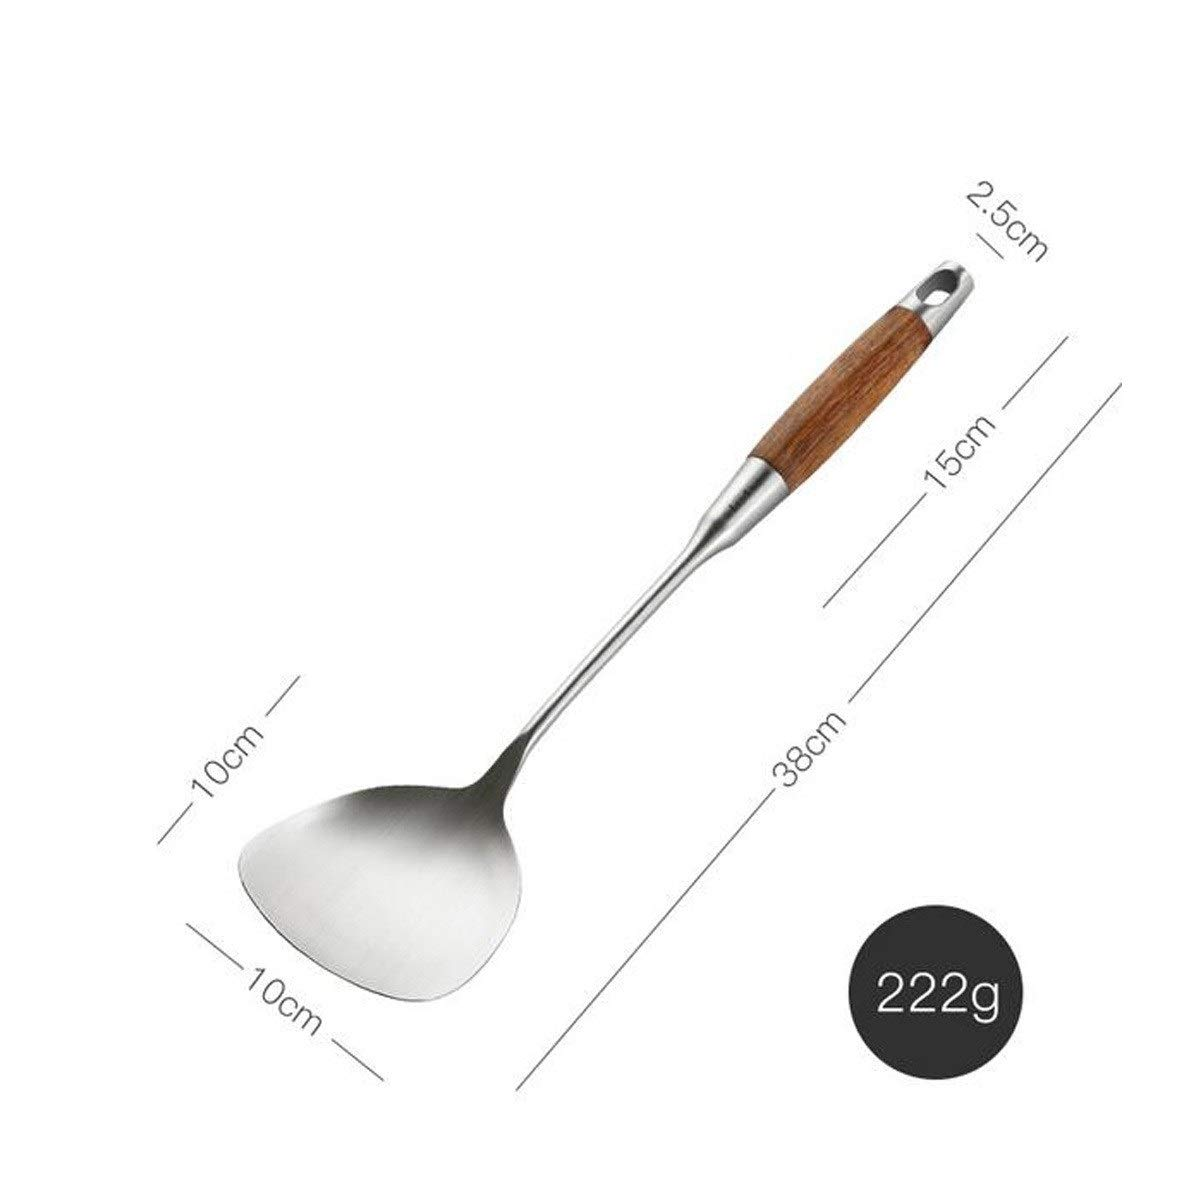 TONGBOSHI Stainless steel spatula Home kitchen wooden handle insulated cooking shovel Kitchenware fried shovel,3810cm, best gift (Size : 3810cm) by TONGBOSHI (Image #2)